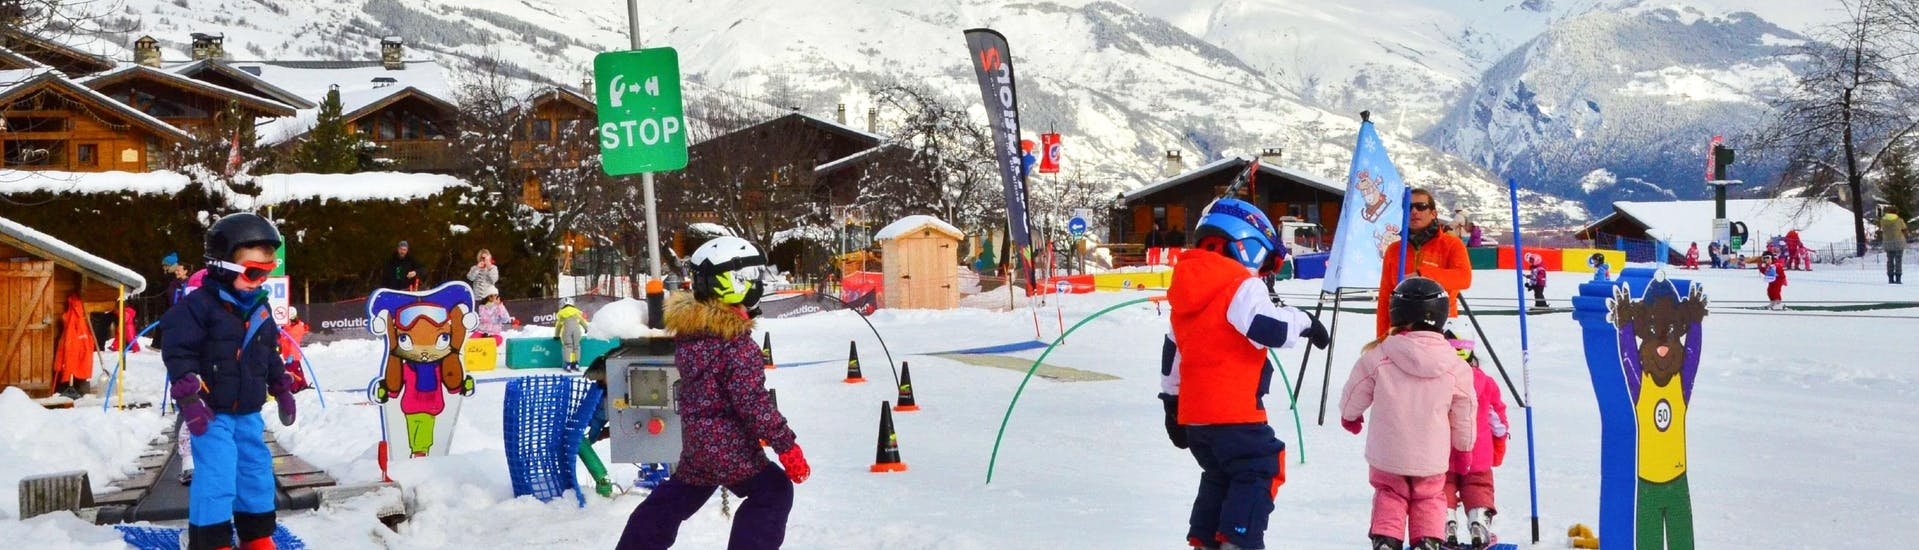 Kids are learning to ski with some games during their Kids Ski Lessons (4-12 y.) for Beginners with the ski school Evolution 2 La Plagne Montchavin - Les Coches.